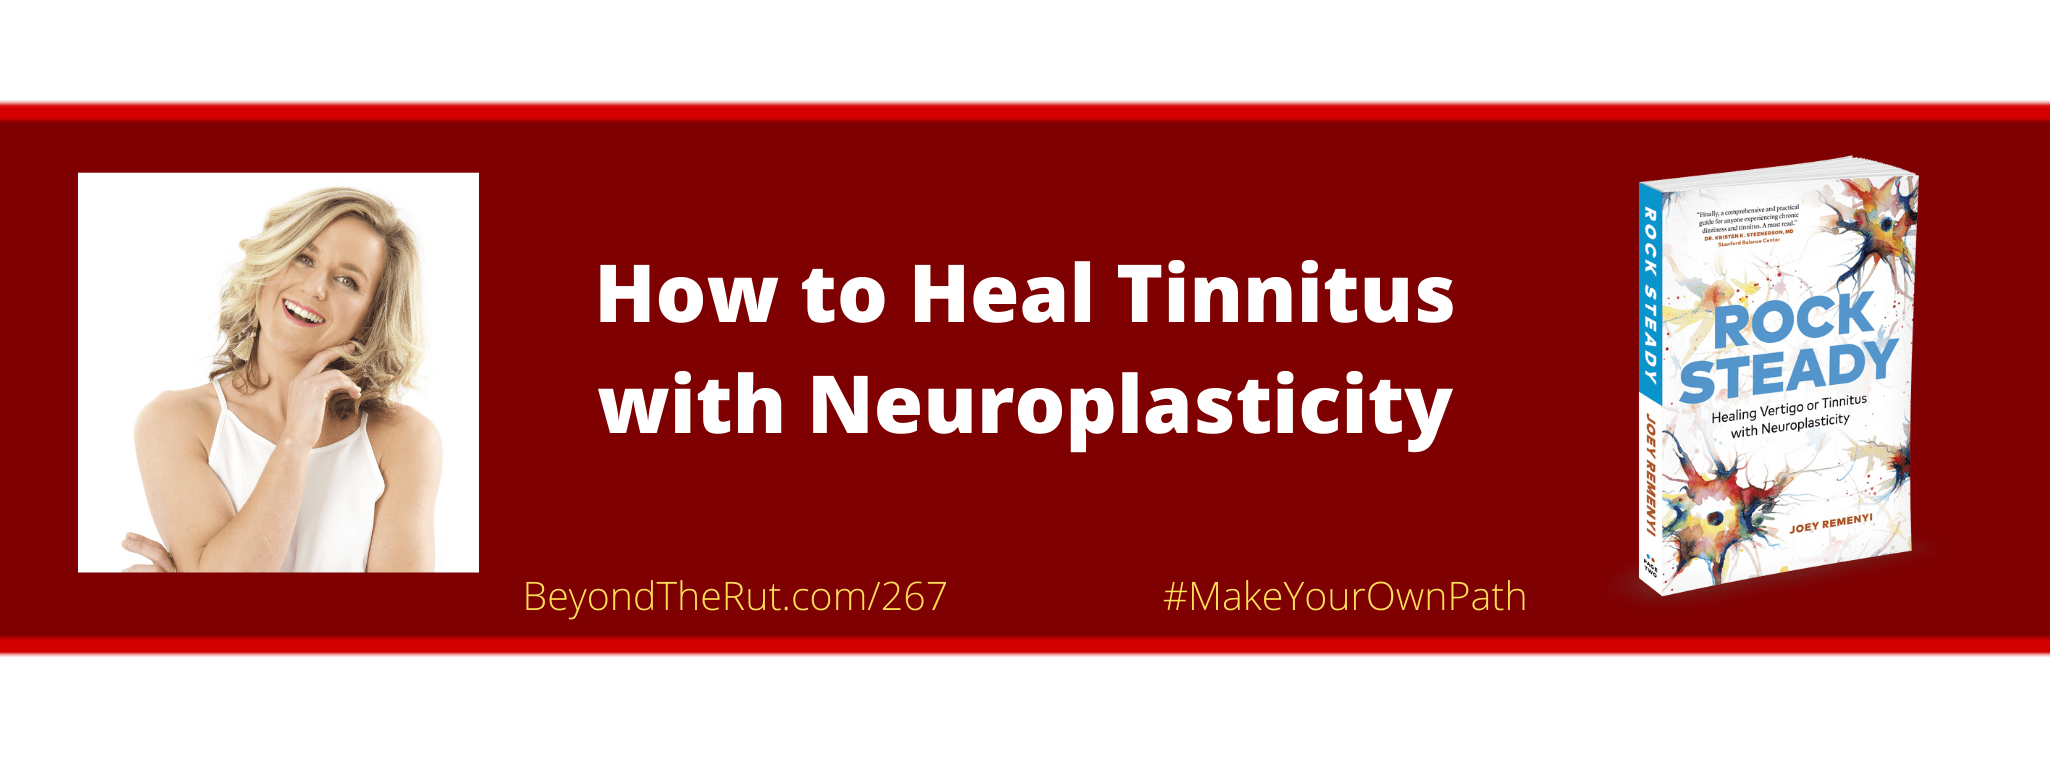 How to Heal Tinnitus with Neuroplasticity- BtR 267